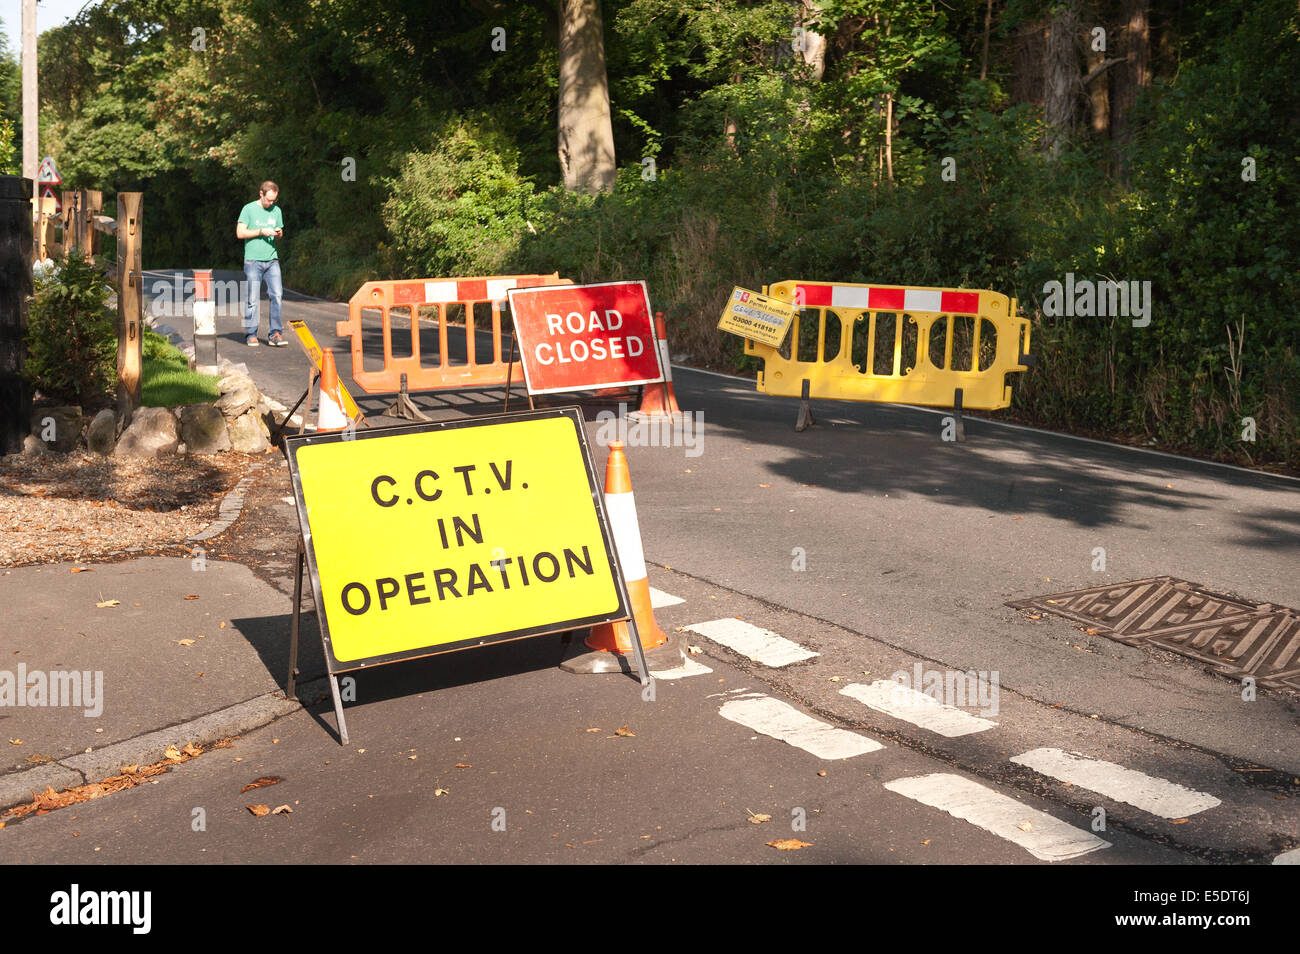 Between Kemsing and Otford in Kent, UK. 29th July, 2014. Road Closure. Novel use of CCTV Traffic enforcement cameras - Stock Image